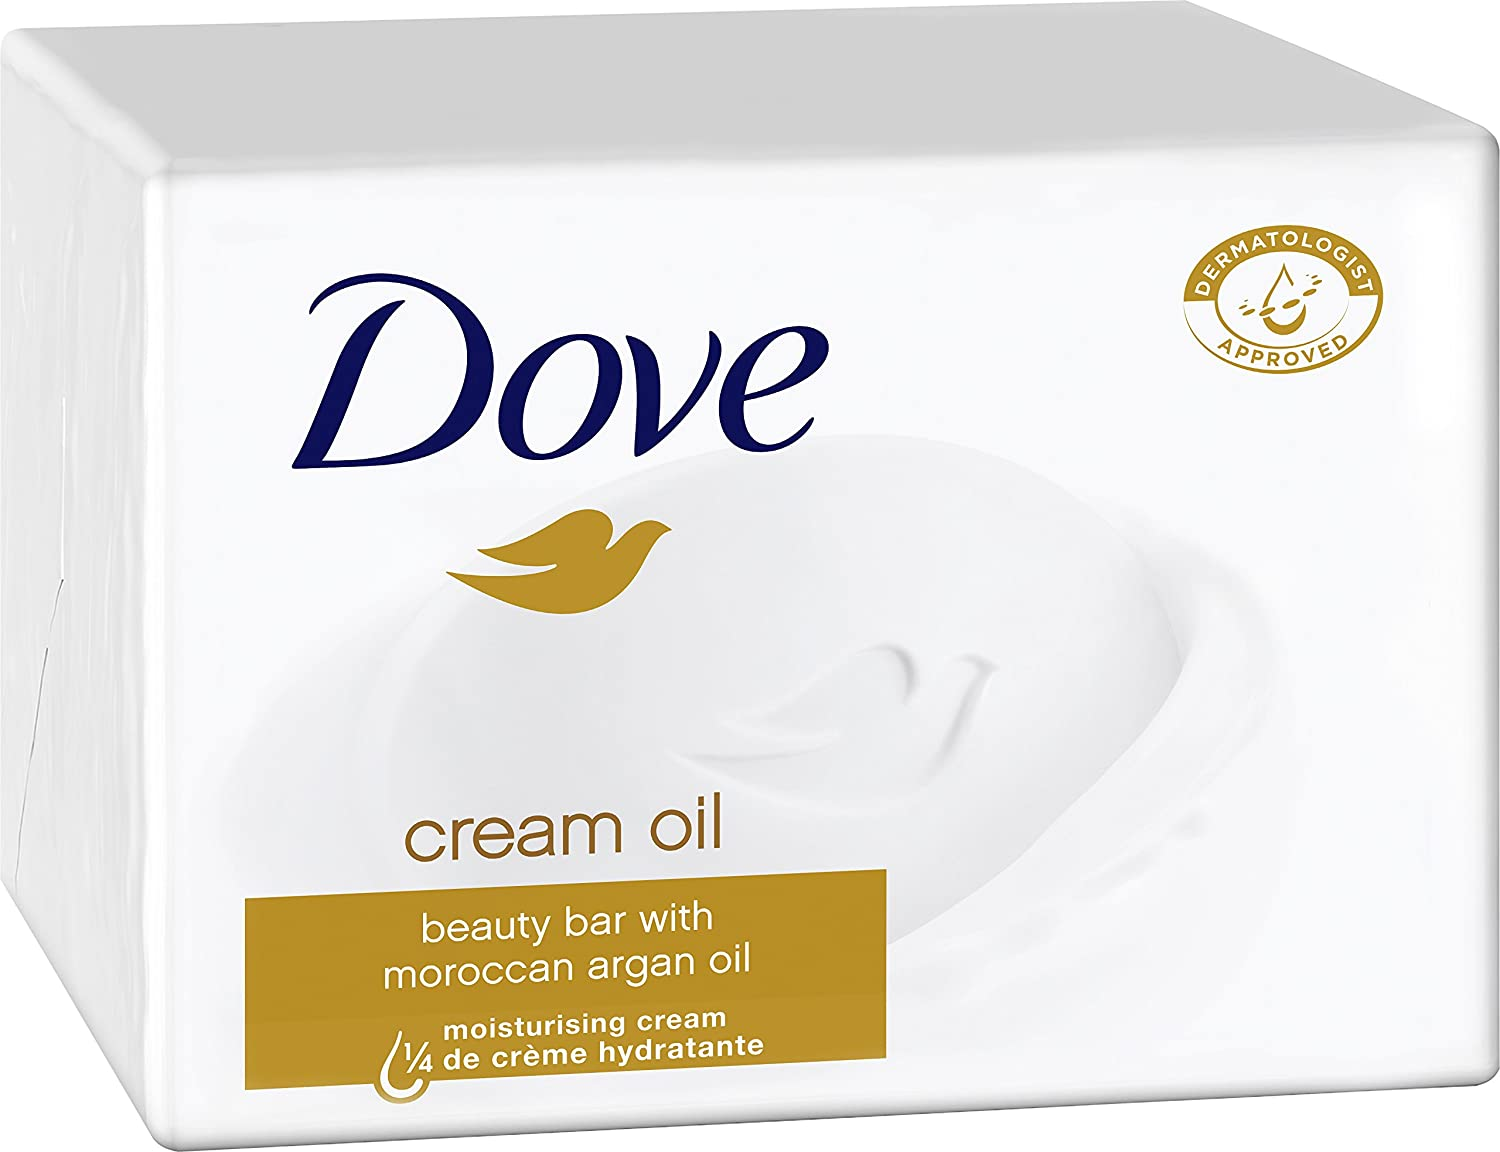 Dove Waschstück Beauty Cream Bar Seife Cream Oil, 6er Pack (6 x 100 g) 8710908471612